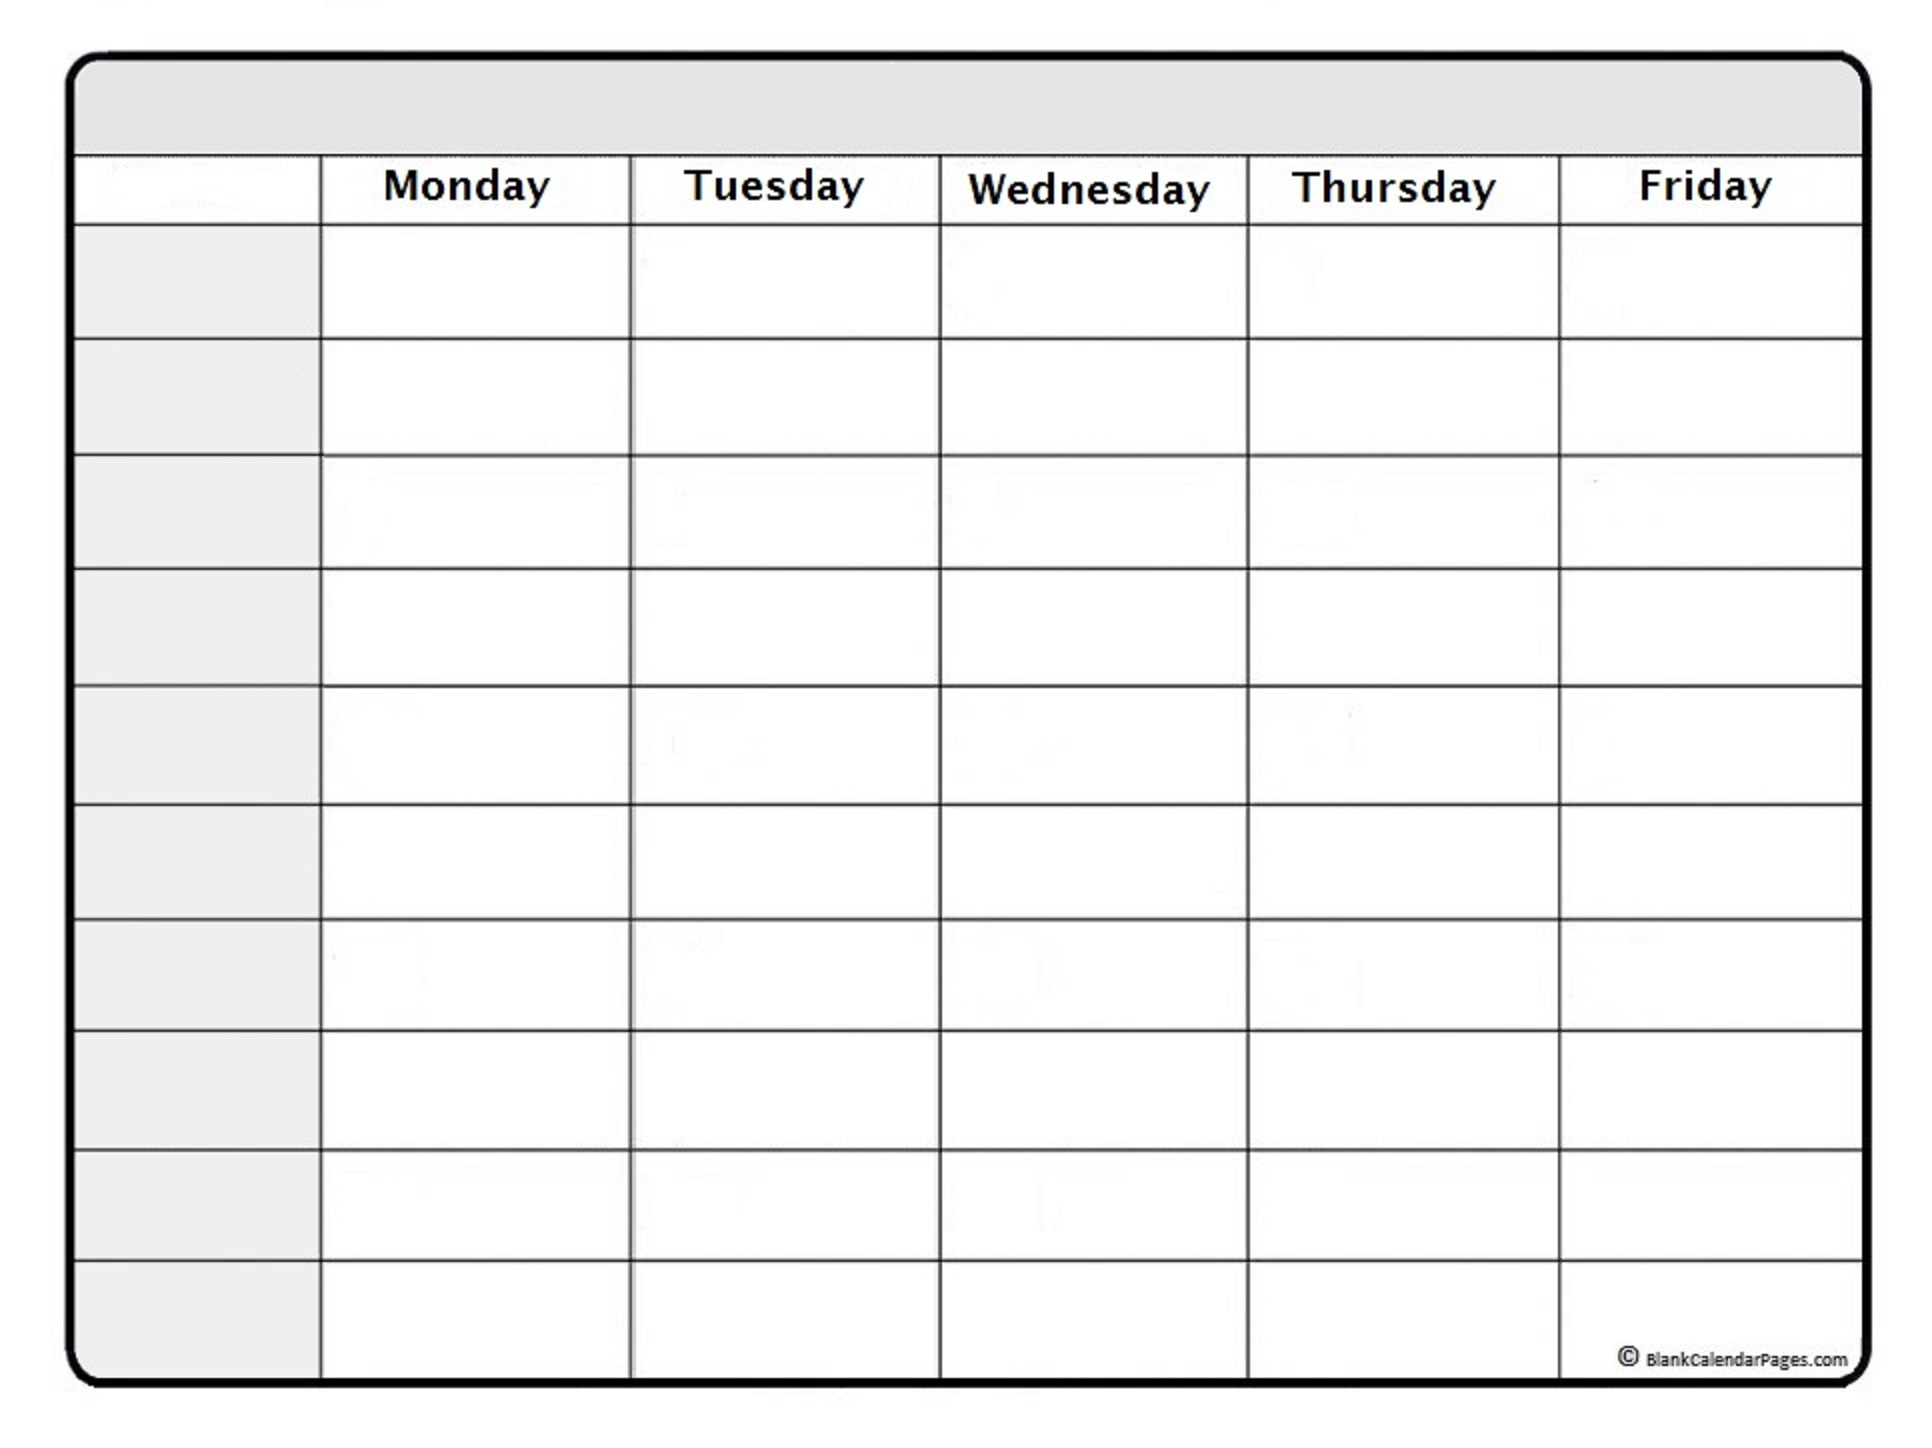 March 2019 Weekly Calendar March 2019 Weekly Calendar Template